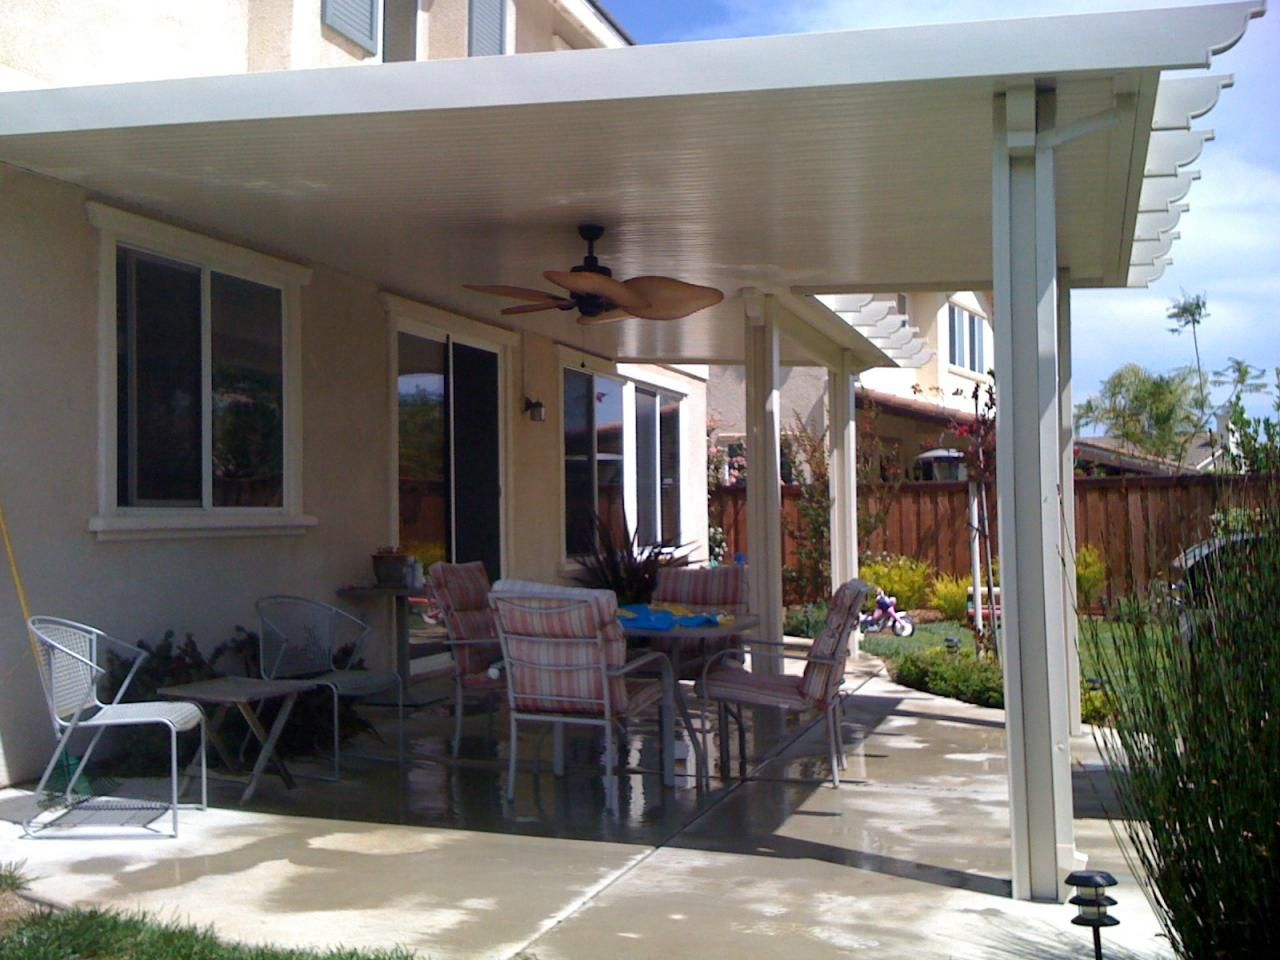 solid alumawood patio cover with ceiling fan back yard ideas